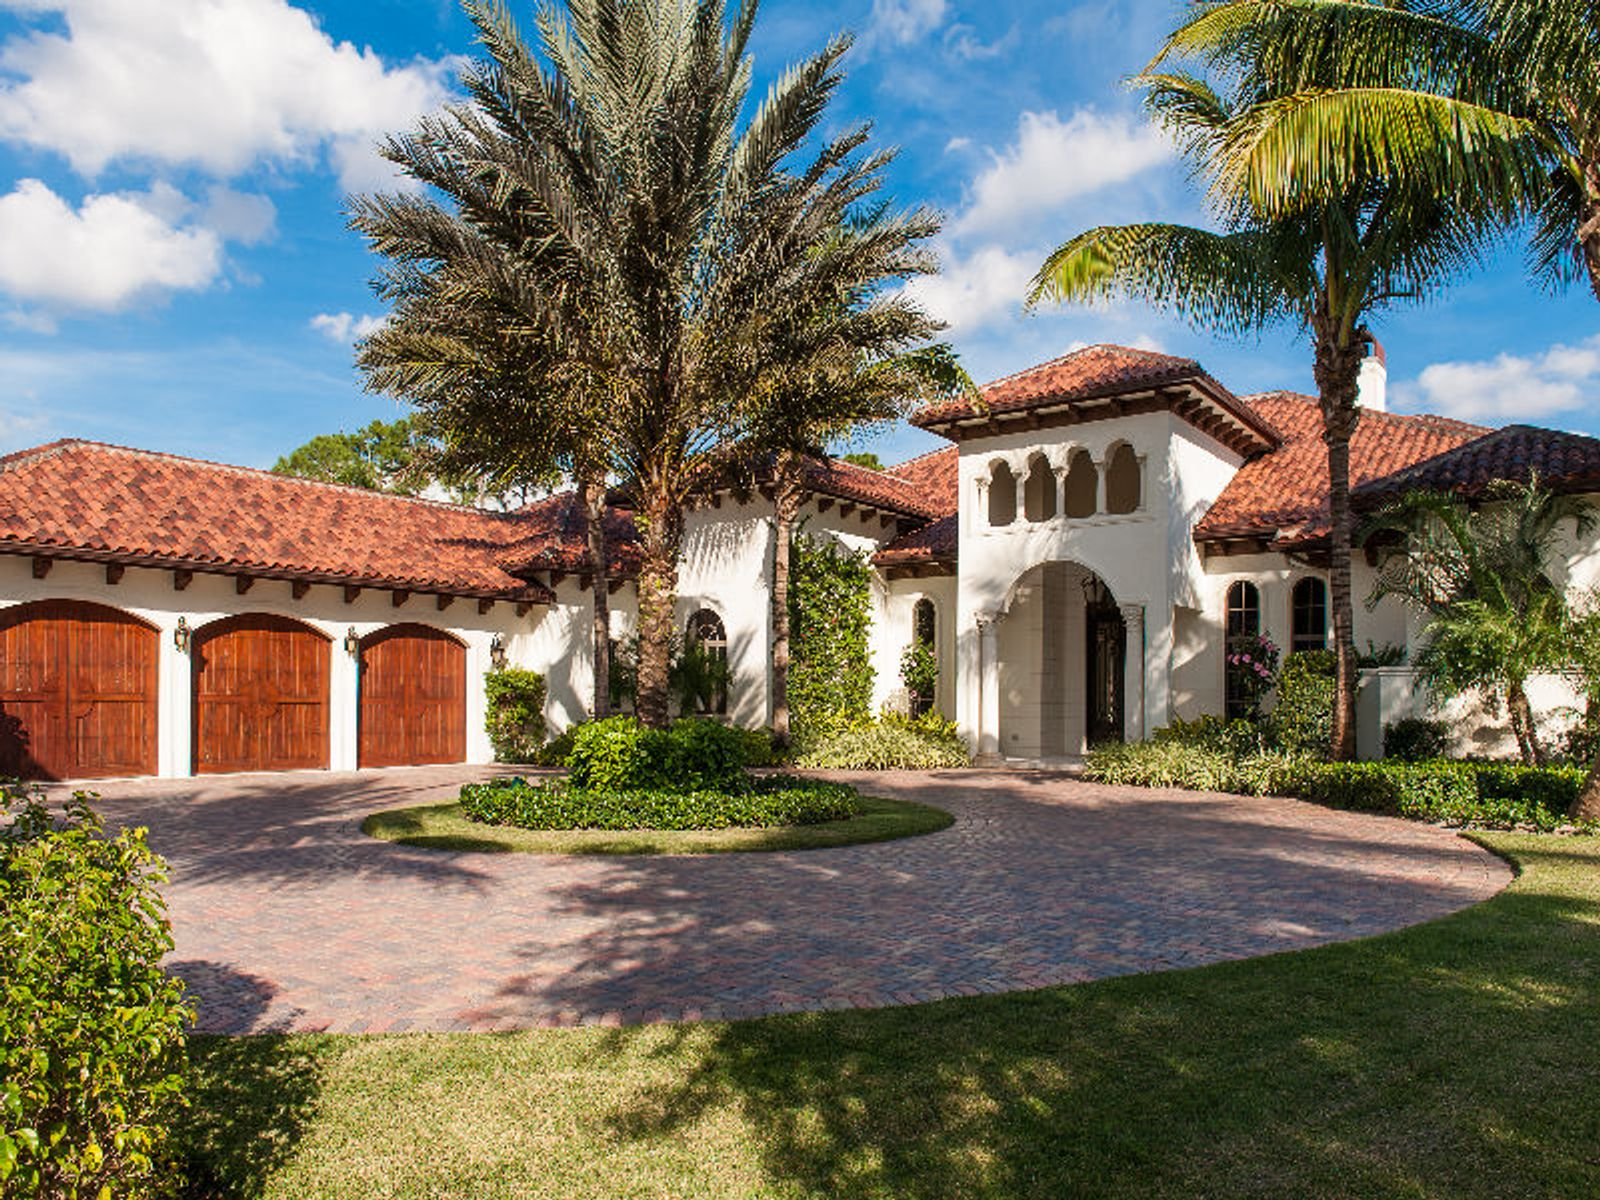 Breakers West, West Palm Beach FL Single Family Home - Palm Beach Real Estate